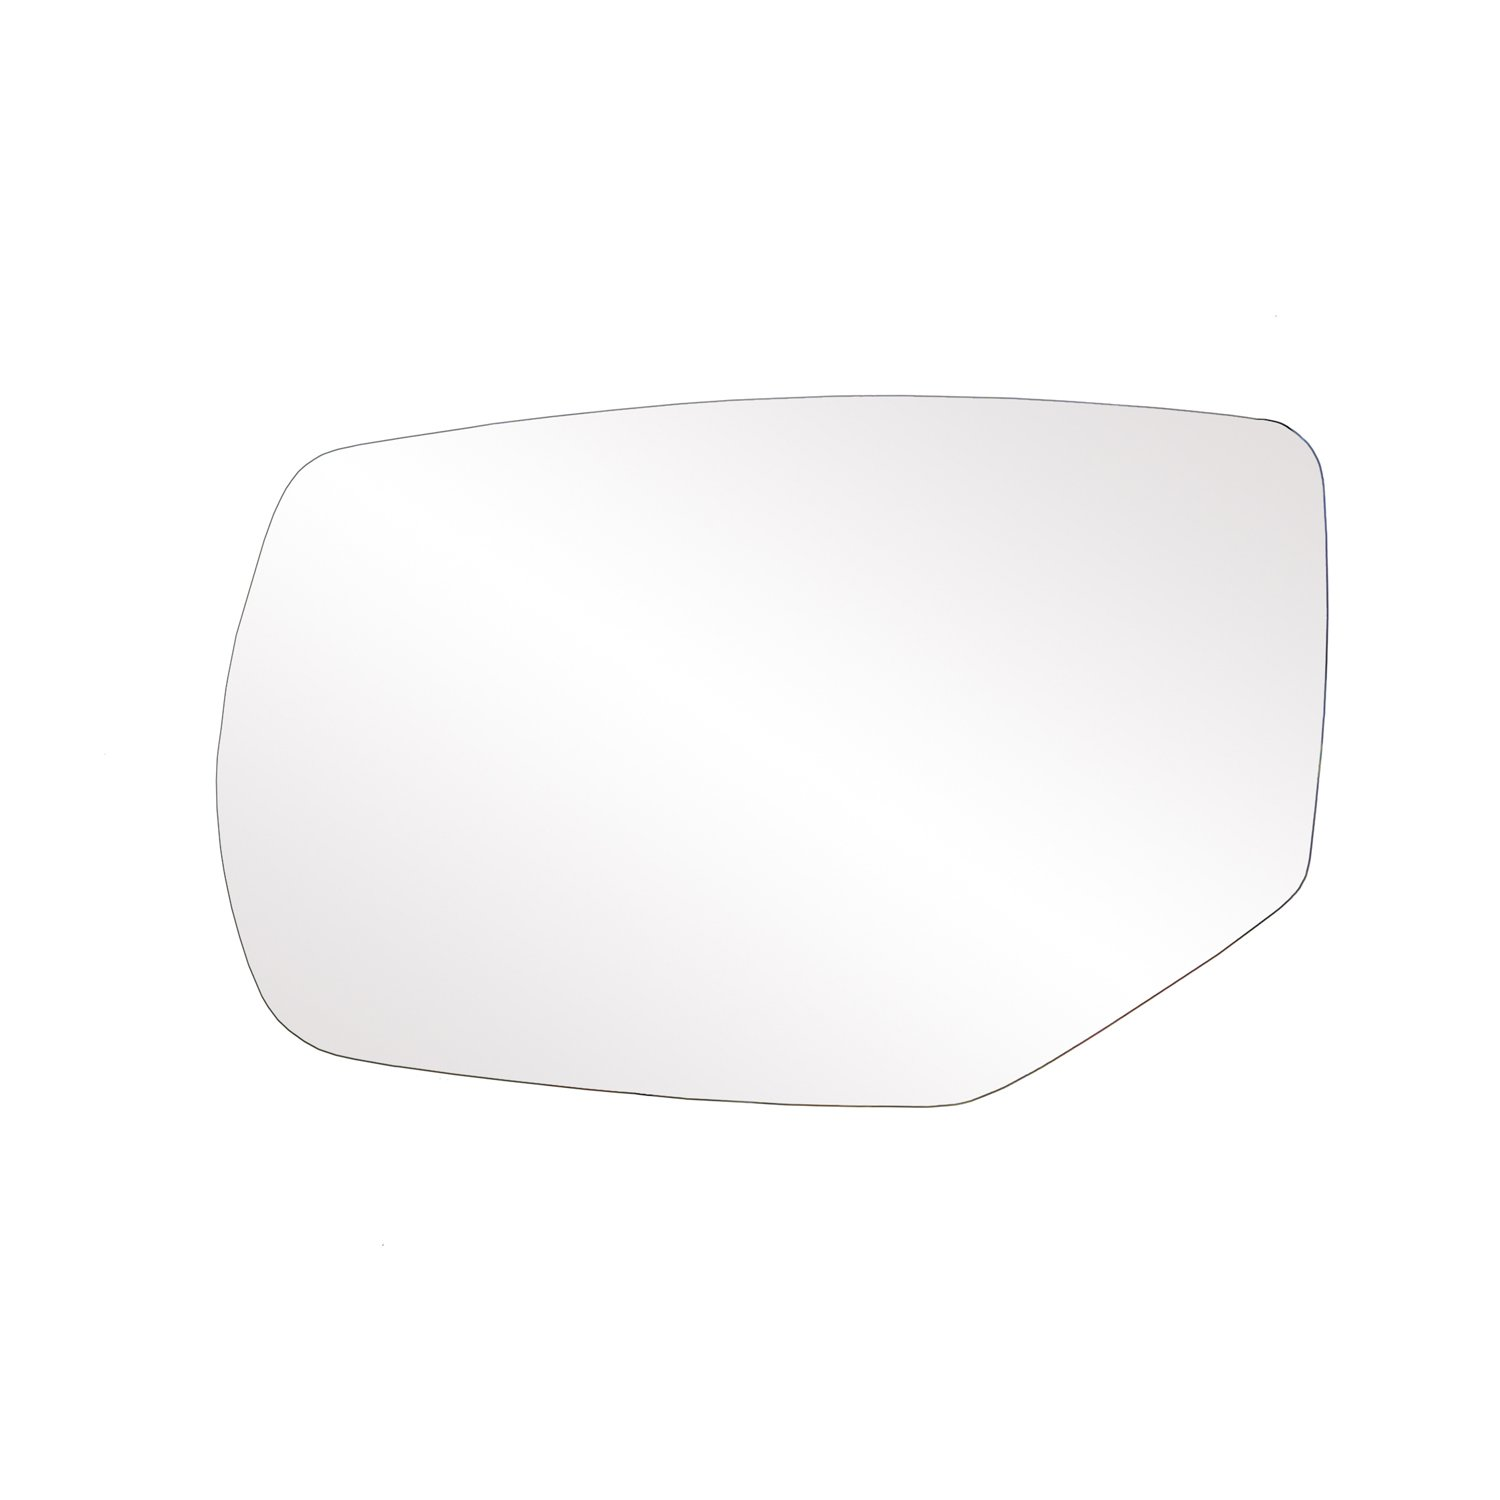 Fit System 30269 Honda Accord Right Side Heated Power Replacement Mirror Glass with Backing Plate and Turn Signal